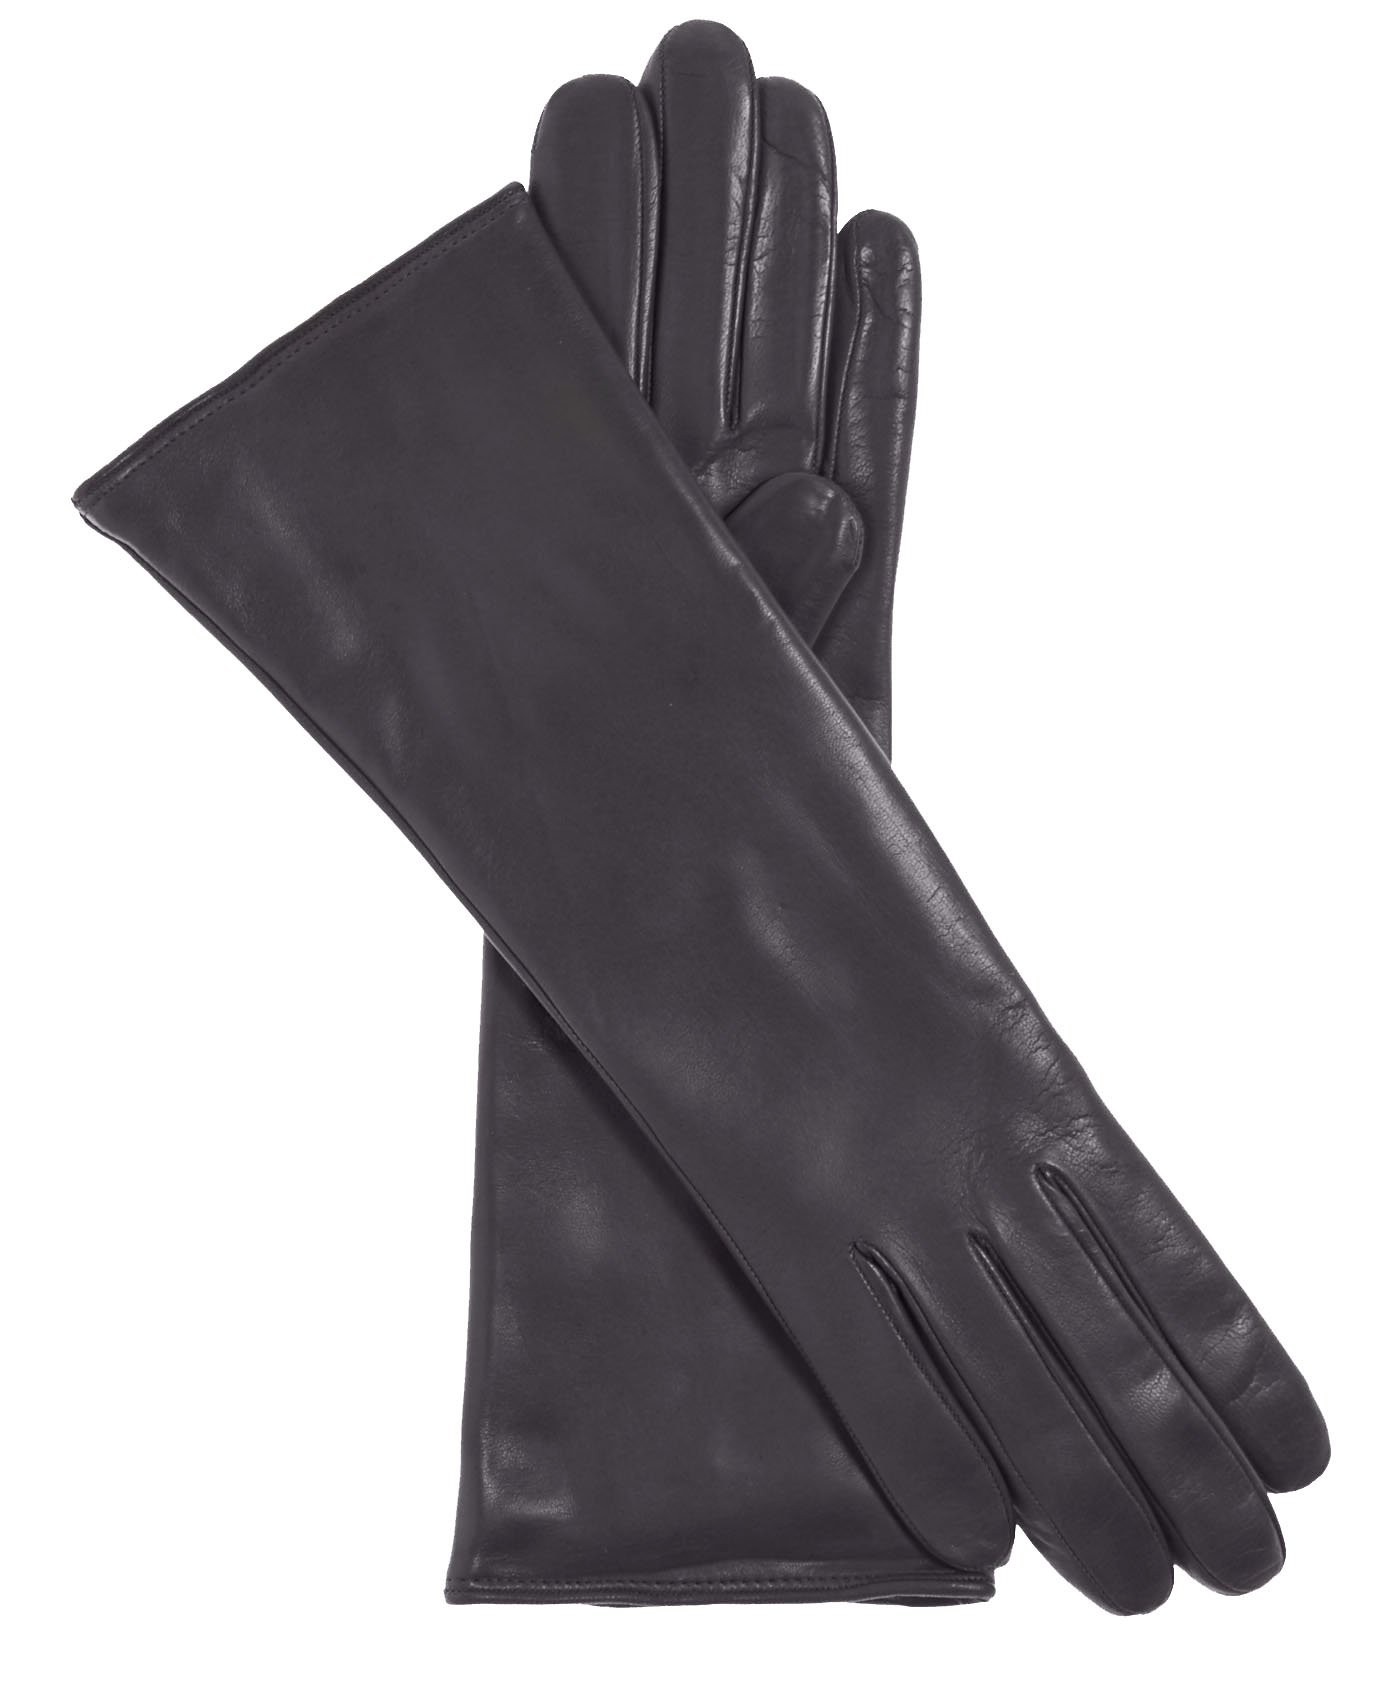 Fratelli Orsini Women's Italian ''4 Button Length'' Cashmere Lined Leather Gloves Size 8 1/2 Color Charcoal by Fratelli Orsini